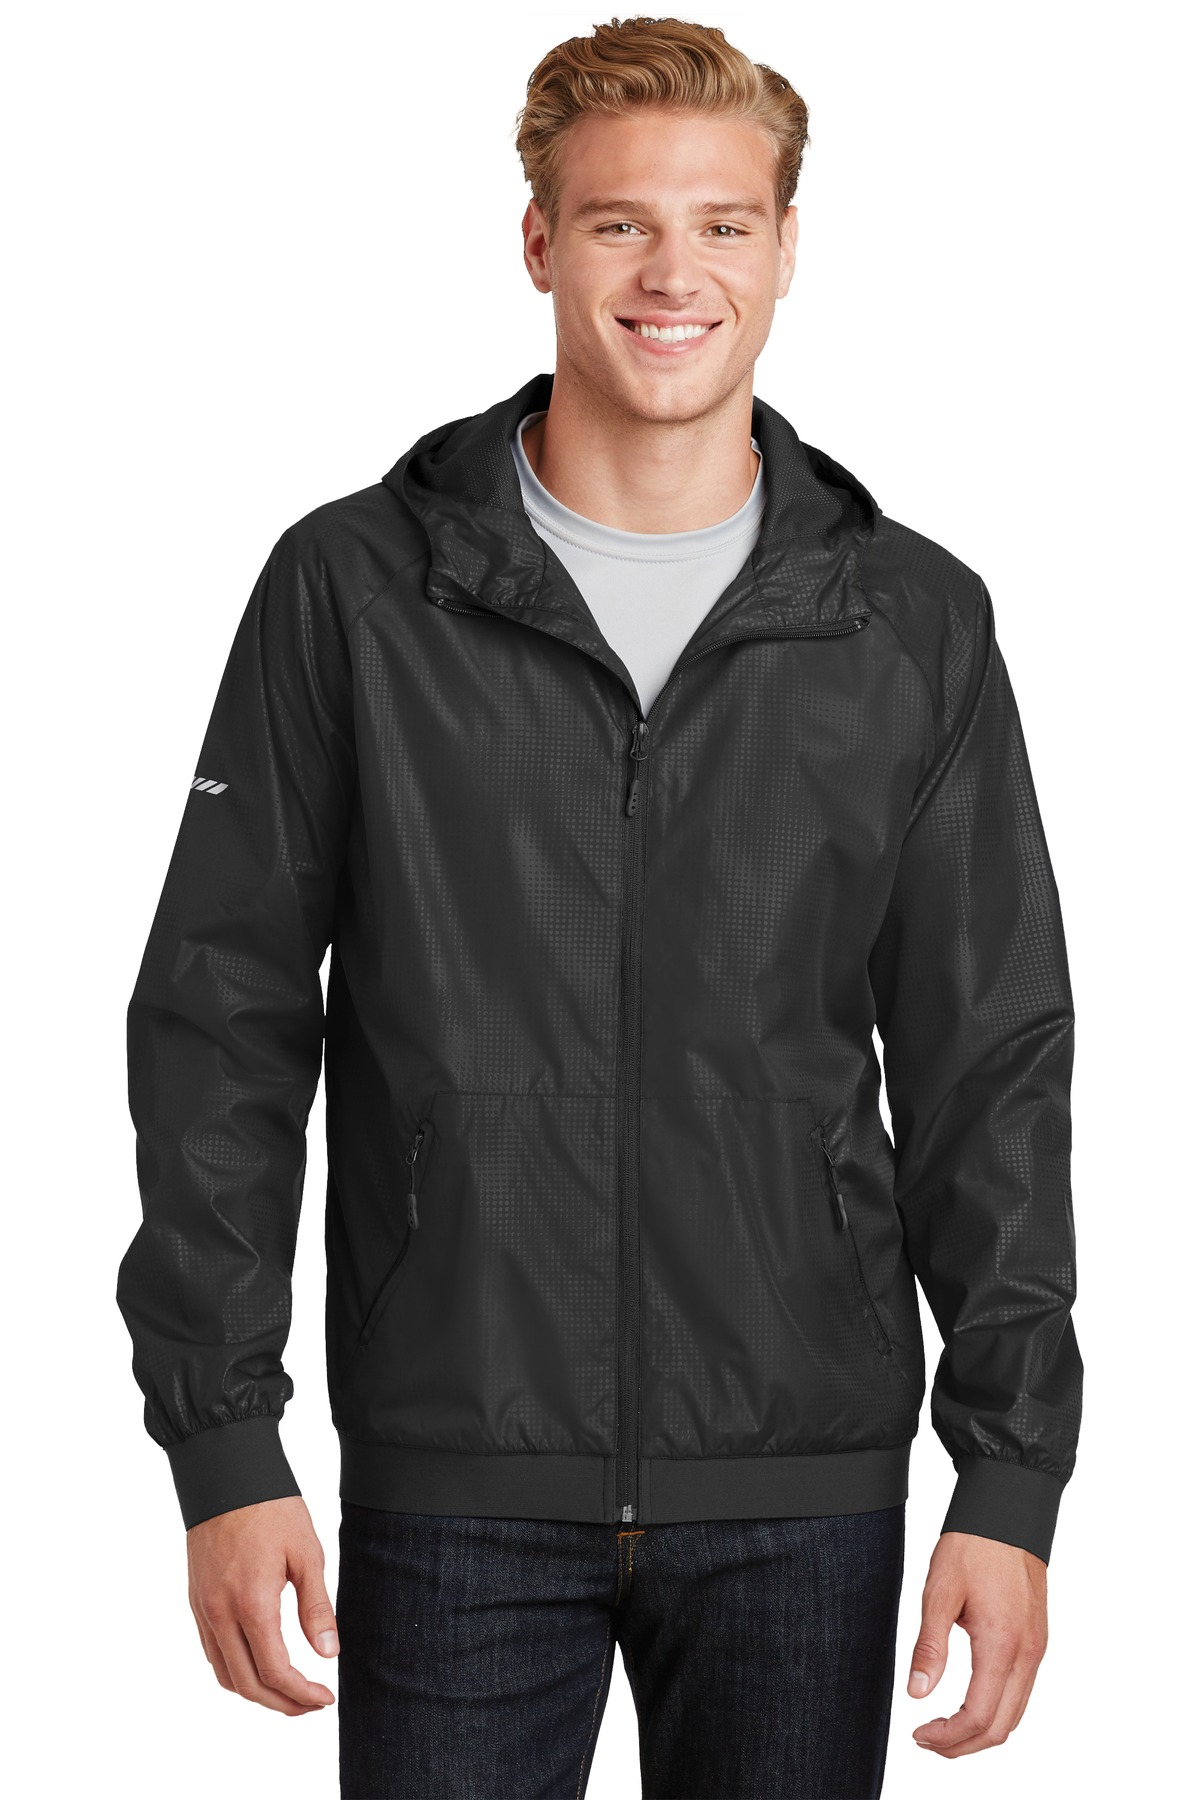 Sport-Tek ®  Embossed Hooded Wind Jacket. JST53 - Black/ Black